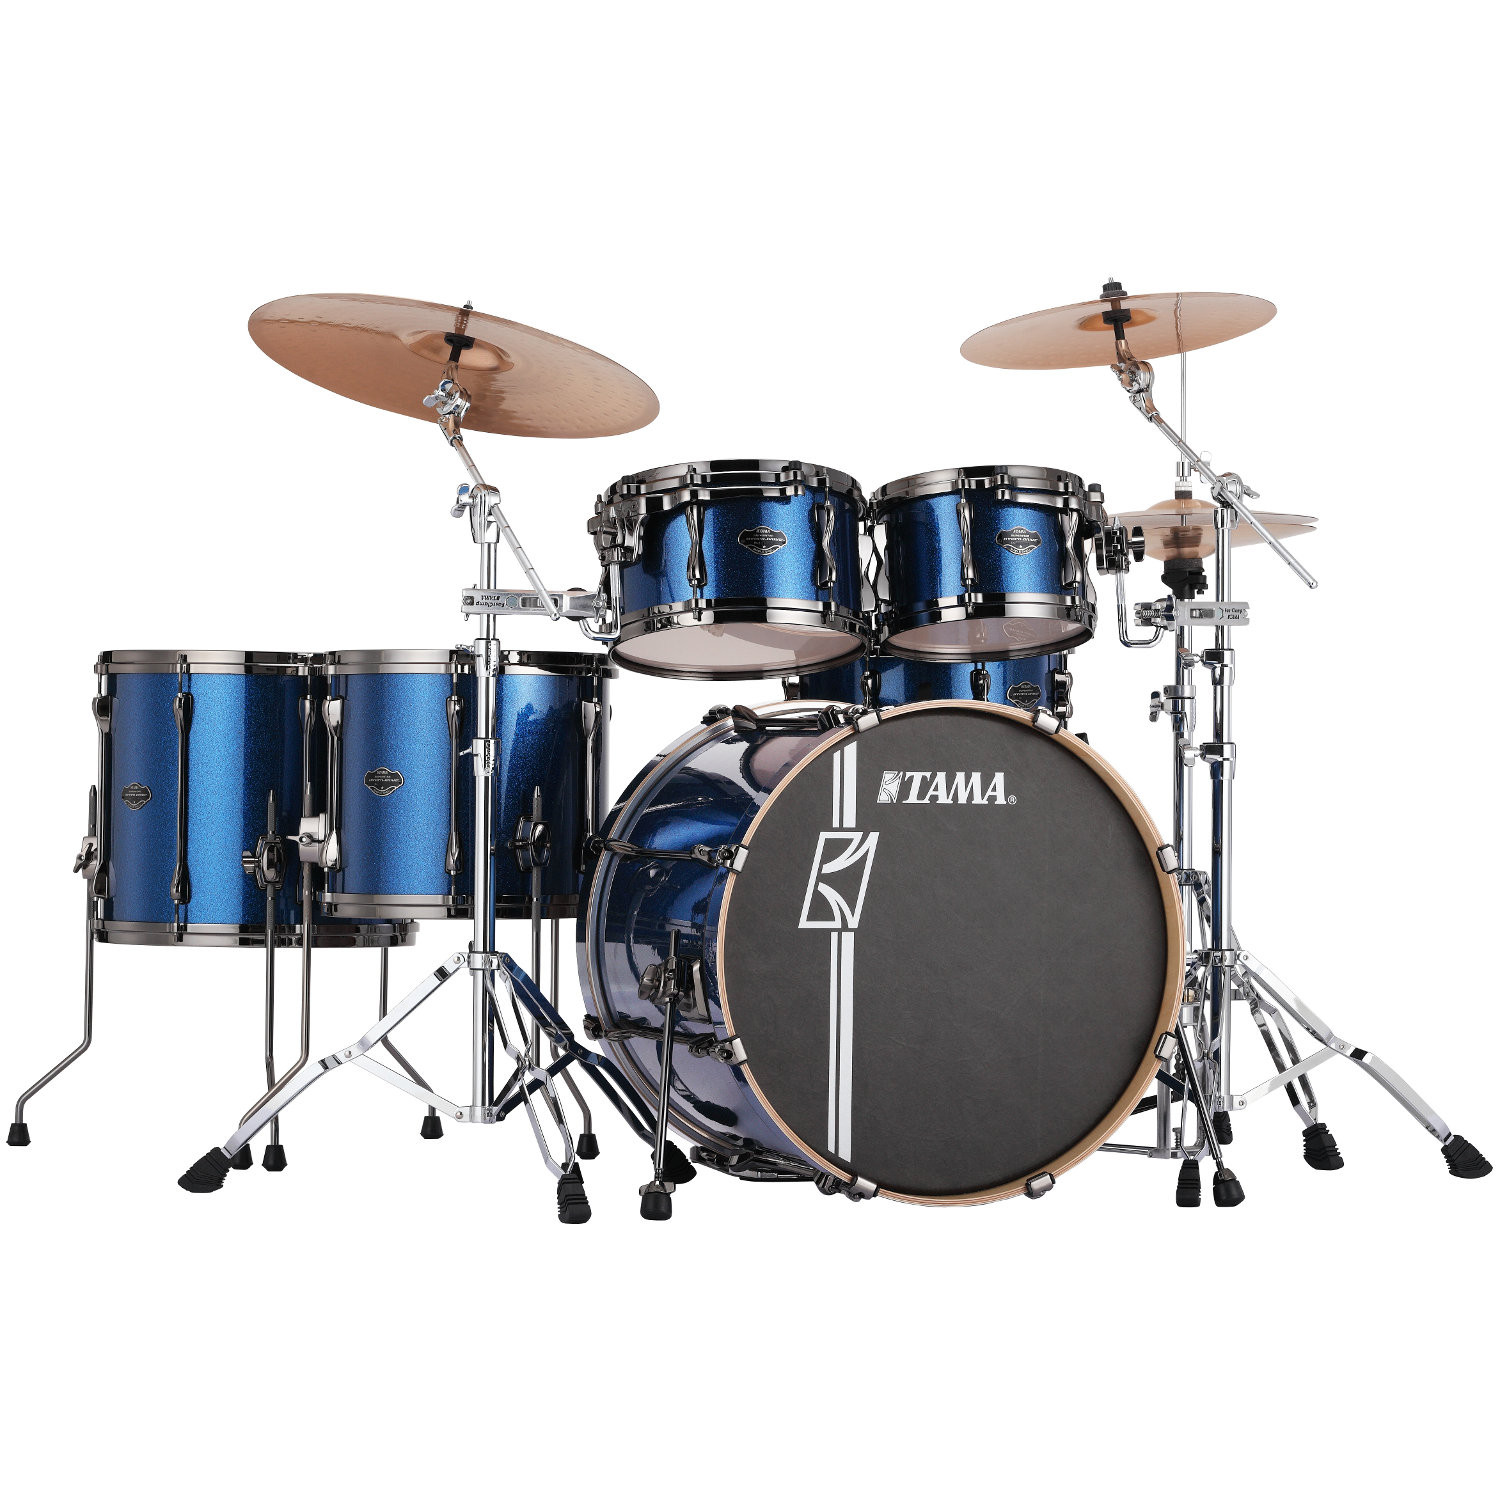 Tama Superstar HD Maple Indigo Sparkle 5 teiliger Kesselsatz